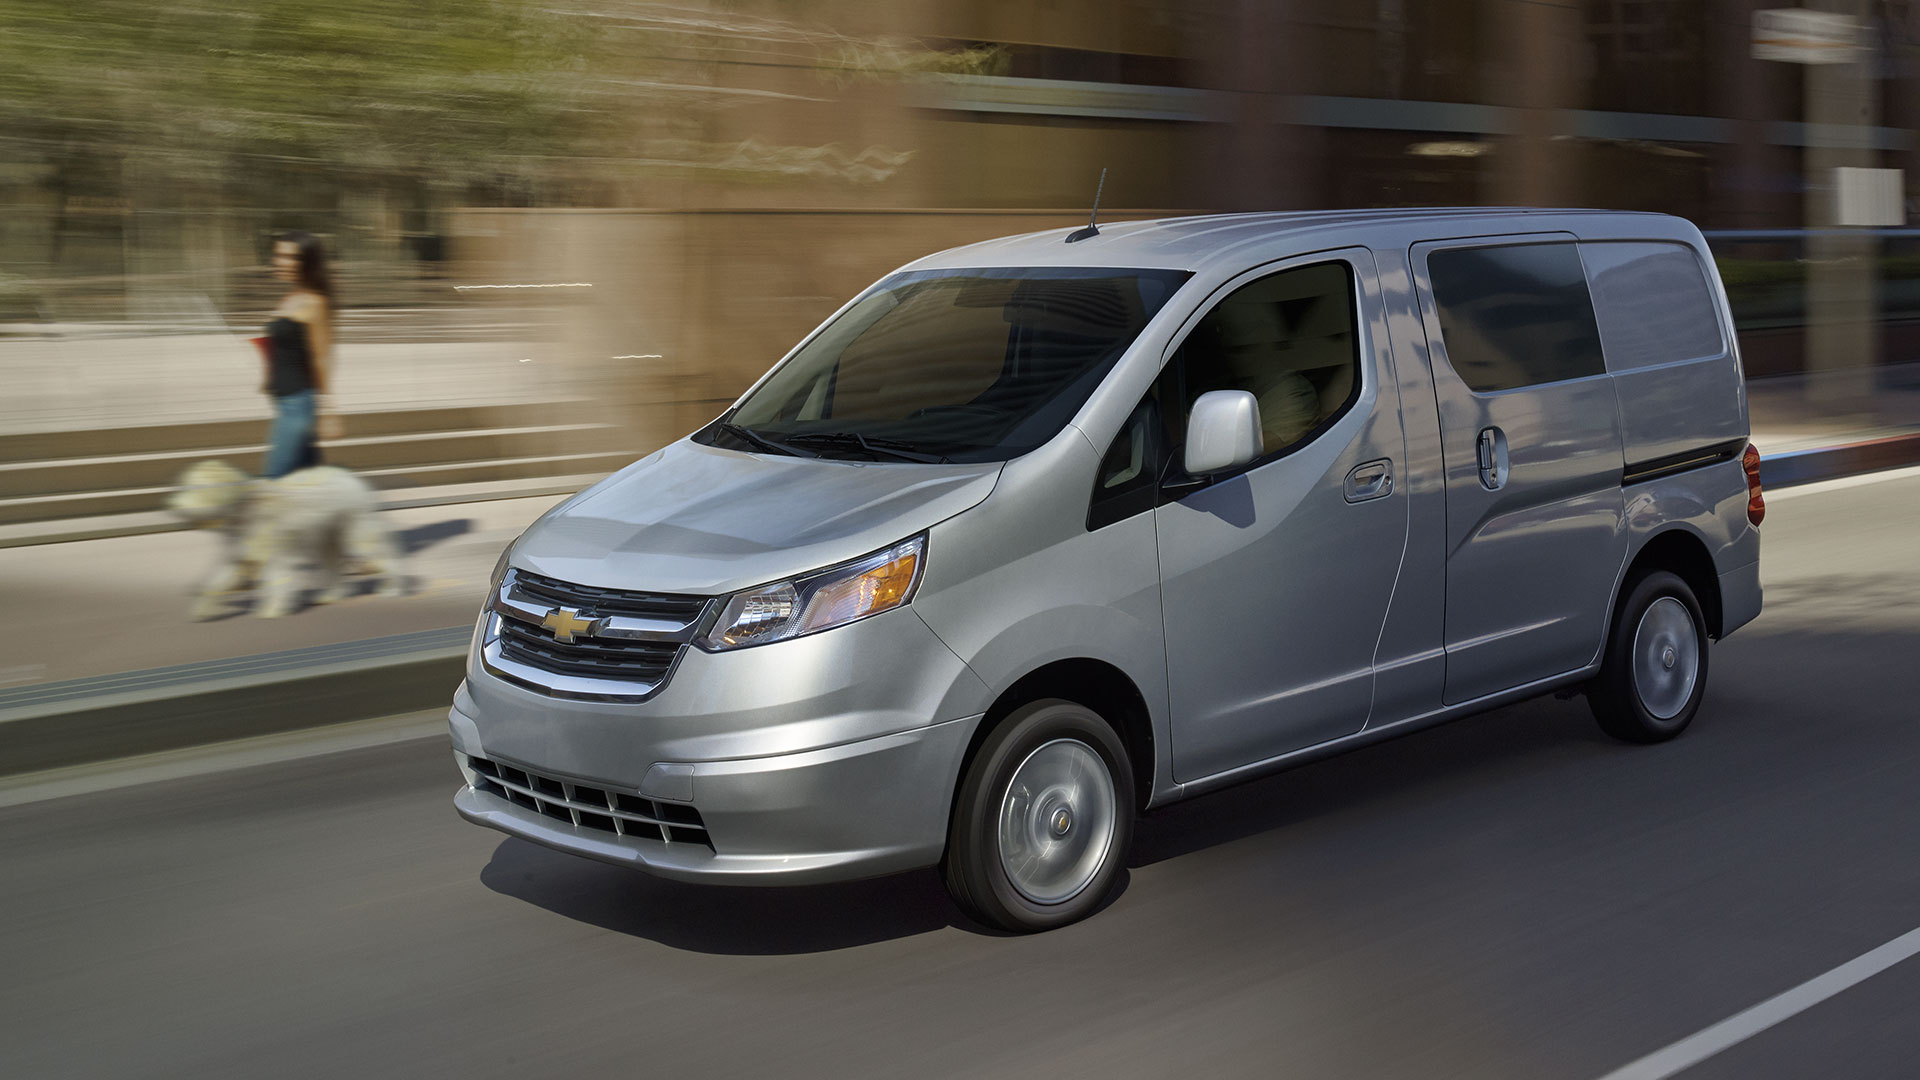 2015 chevy city express florence ky cincinnati oh tom. Black Bedroom Furniture Sets. Home Design Ideas